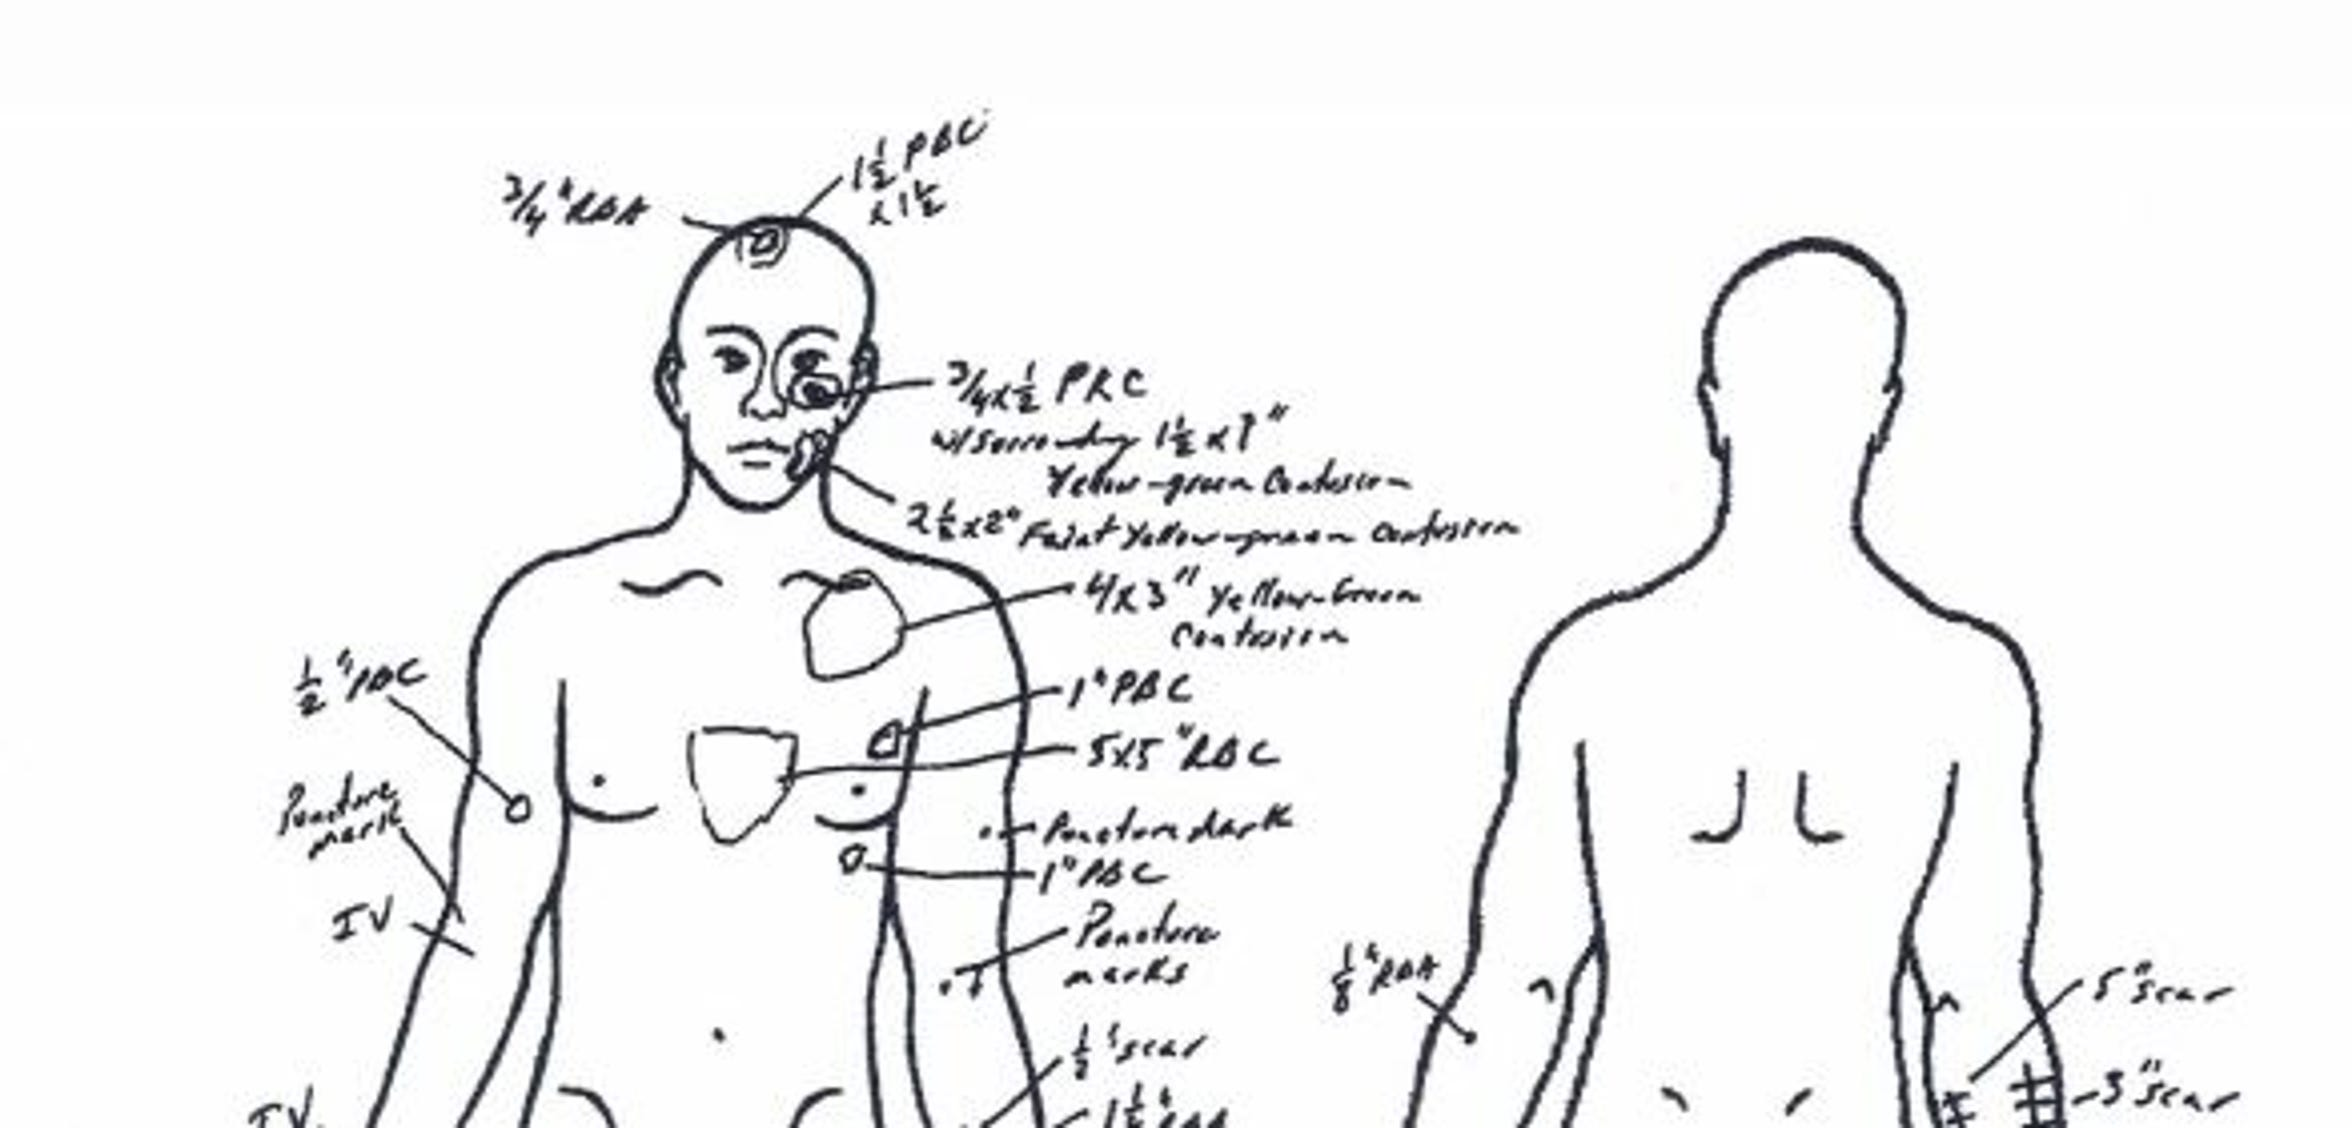 Earl Wayne Johnson's autopsy report shows multiple injuries to his head and upper body.